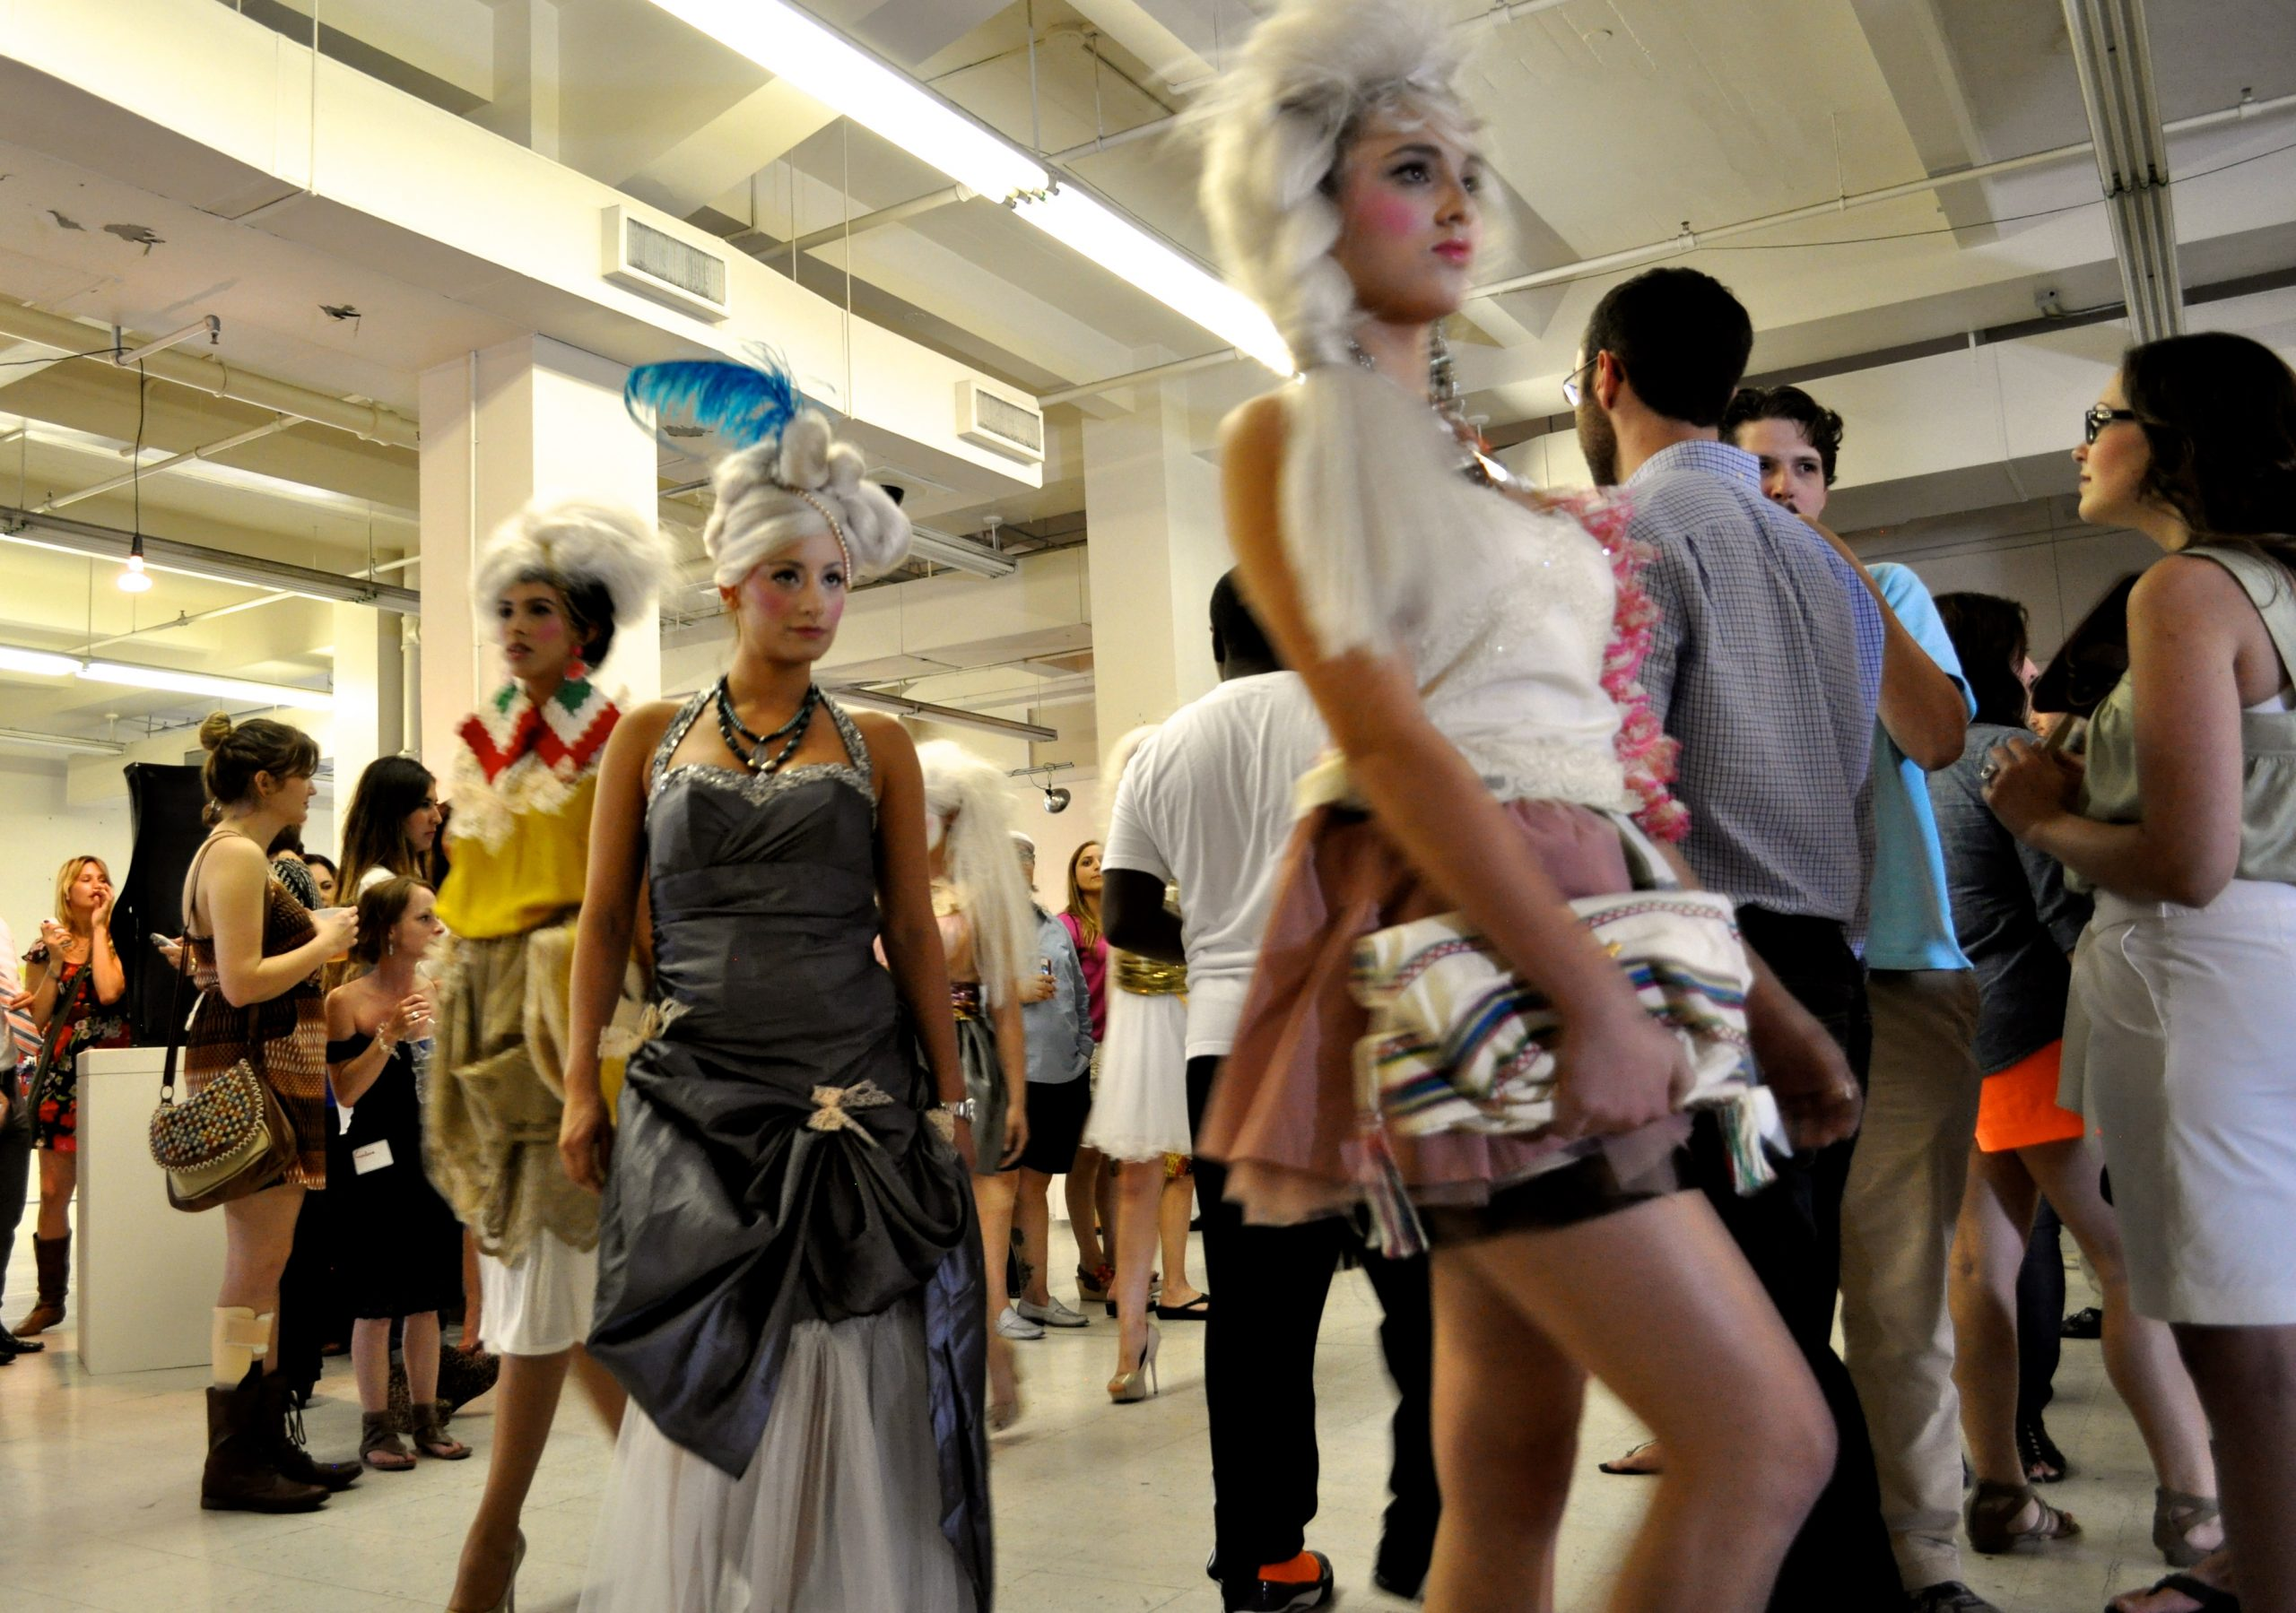 Models wear the work of local designer Agusto Cuellar while they weave through the crowd gathered at the Center City Open House. Photo by Iris Dimmick.